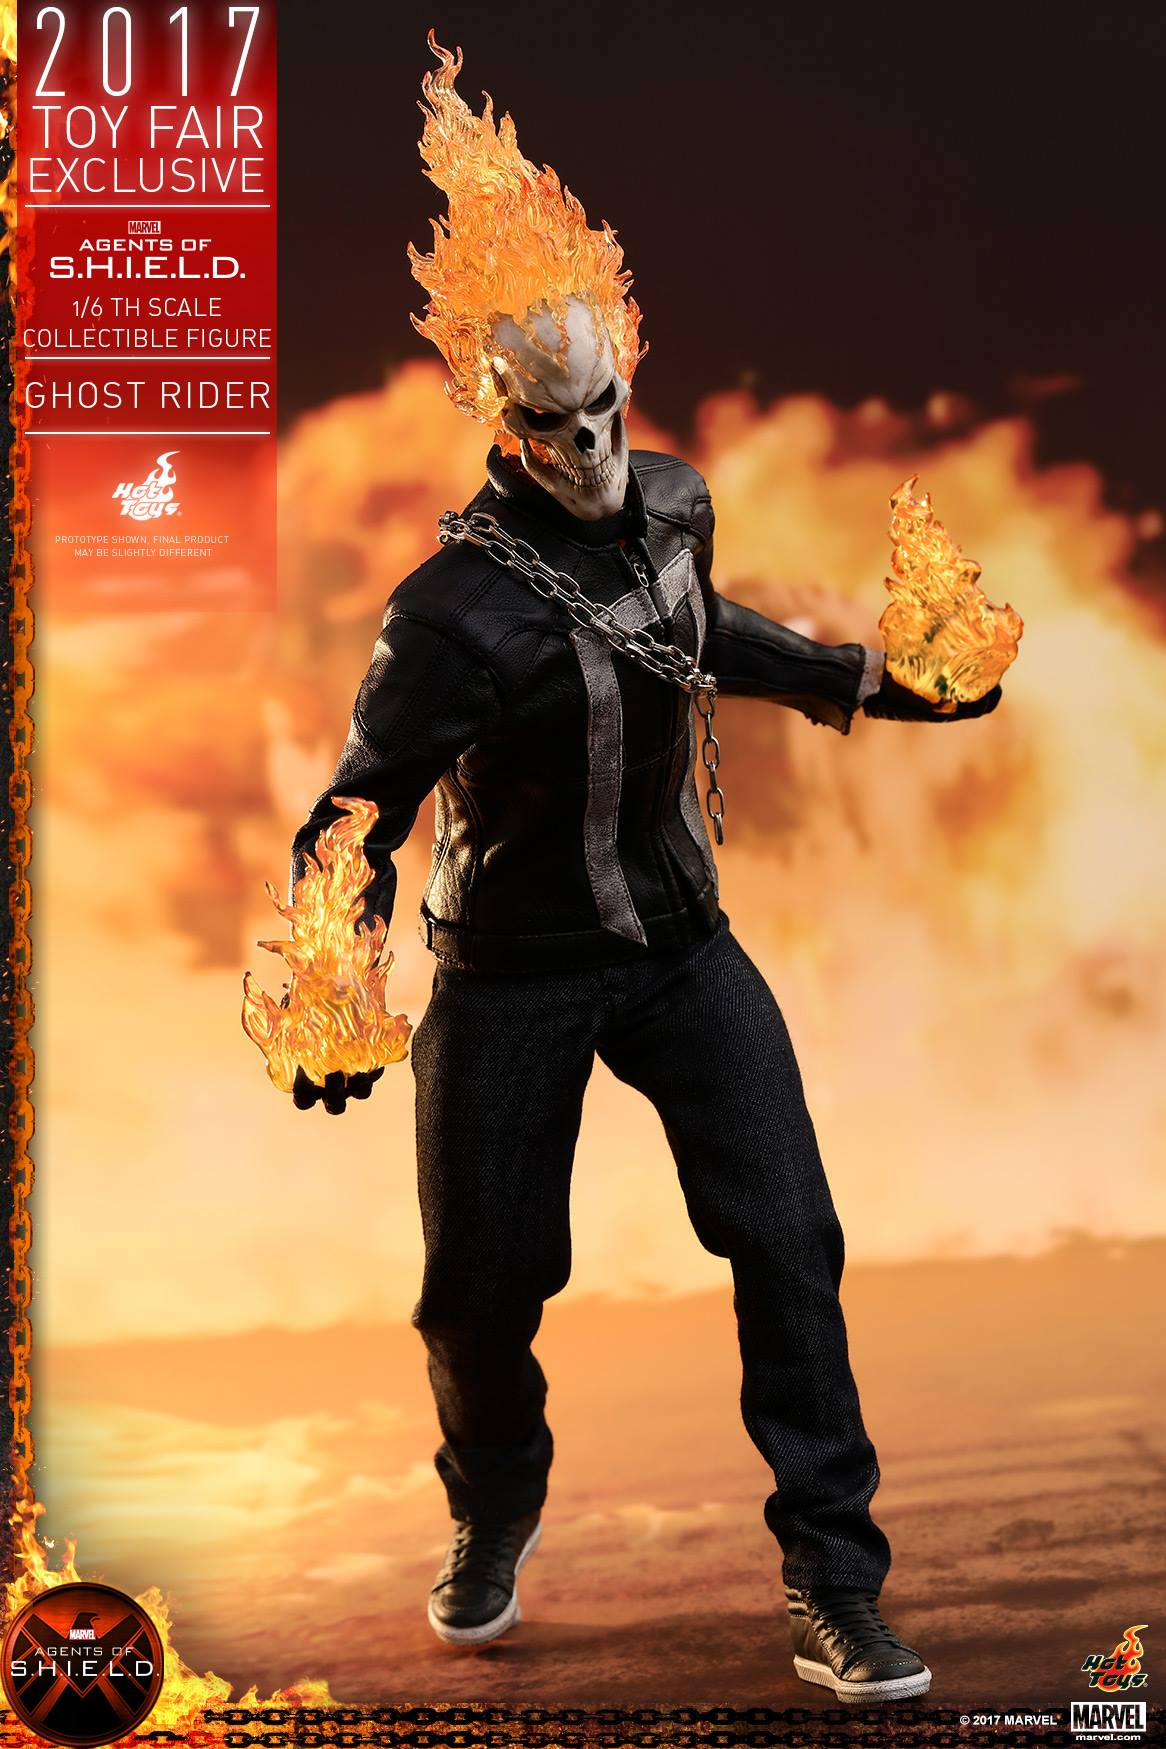 Agents of SHIELD -1/6th scale Ghost Rider Collectible Figure